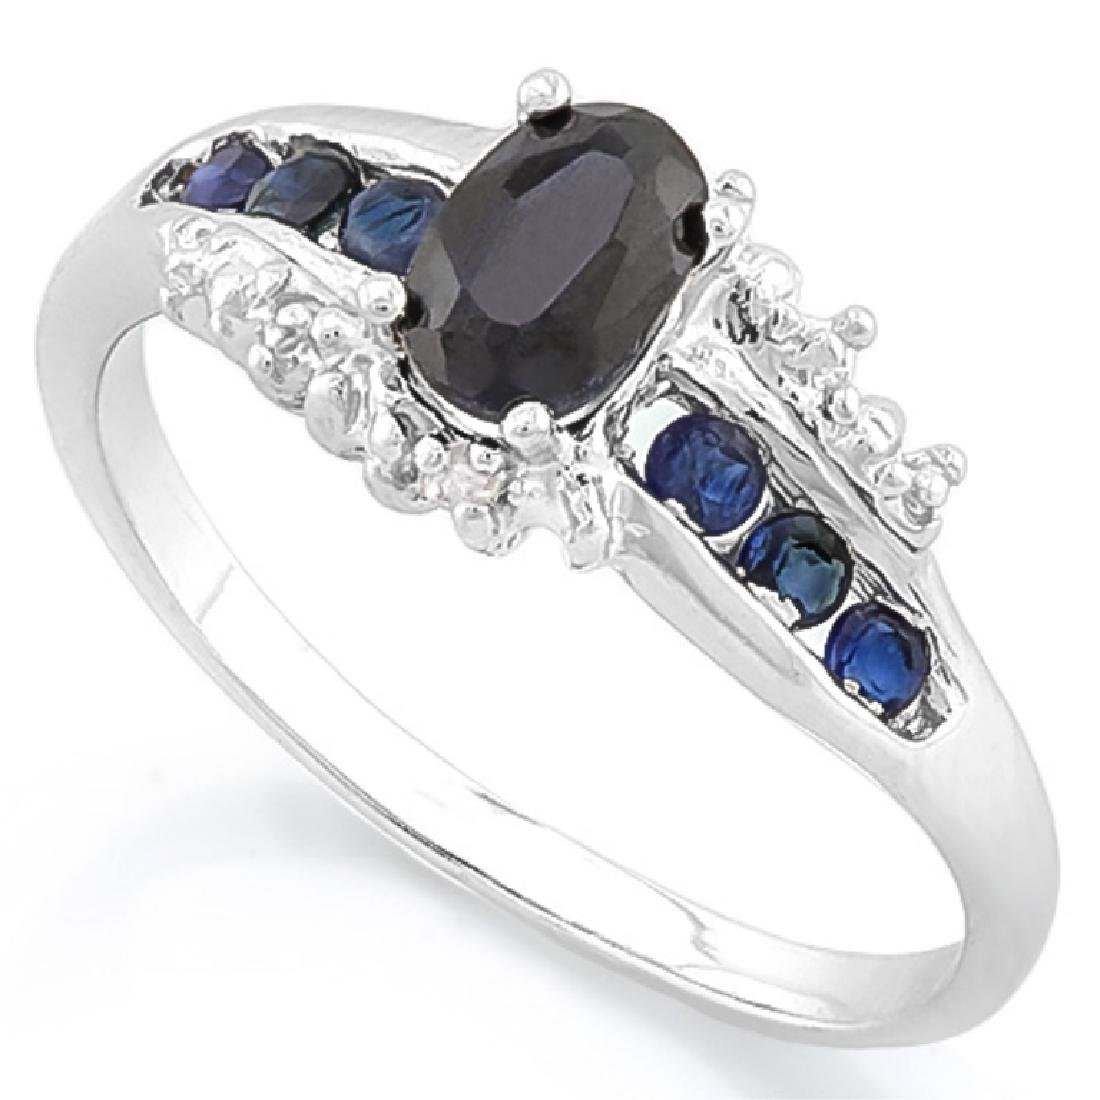 ANTIQUE STYLE BLACK/WHITE SAPPHIRE STERLING RING